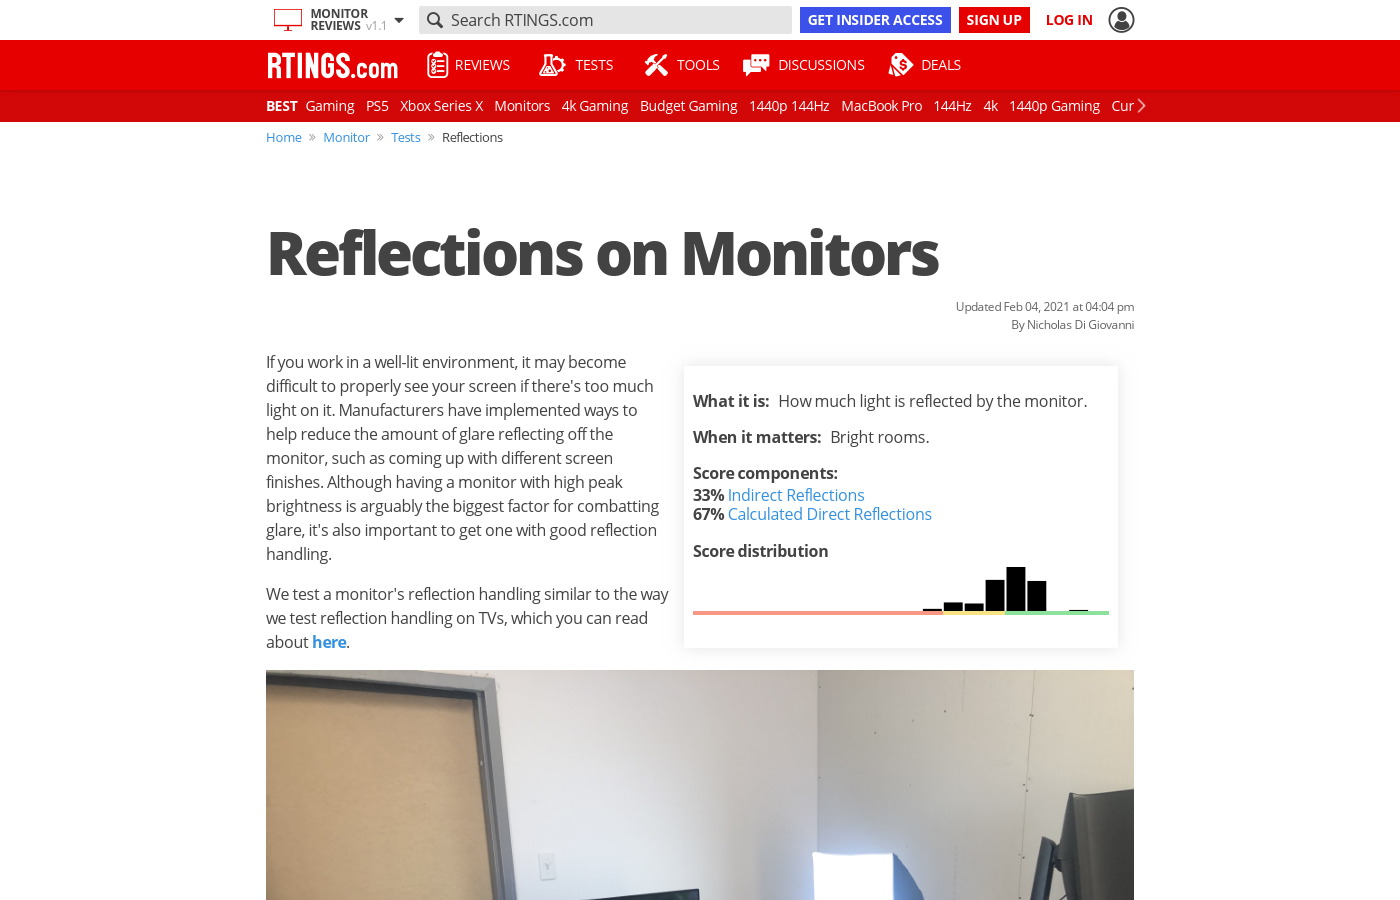 Reflections on Monitors